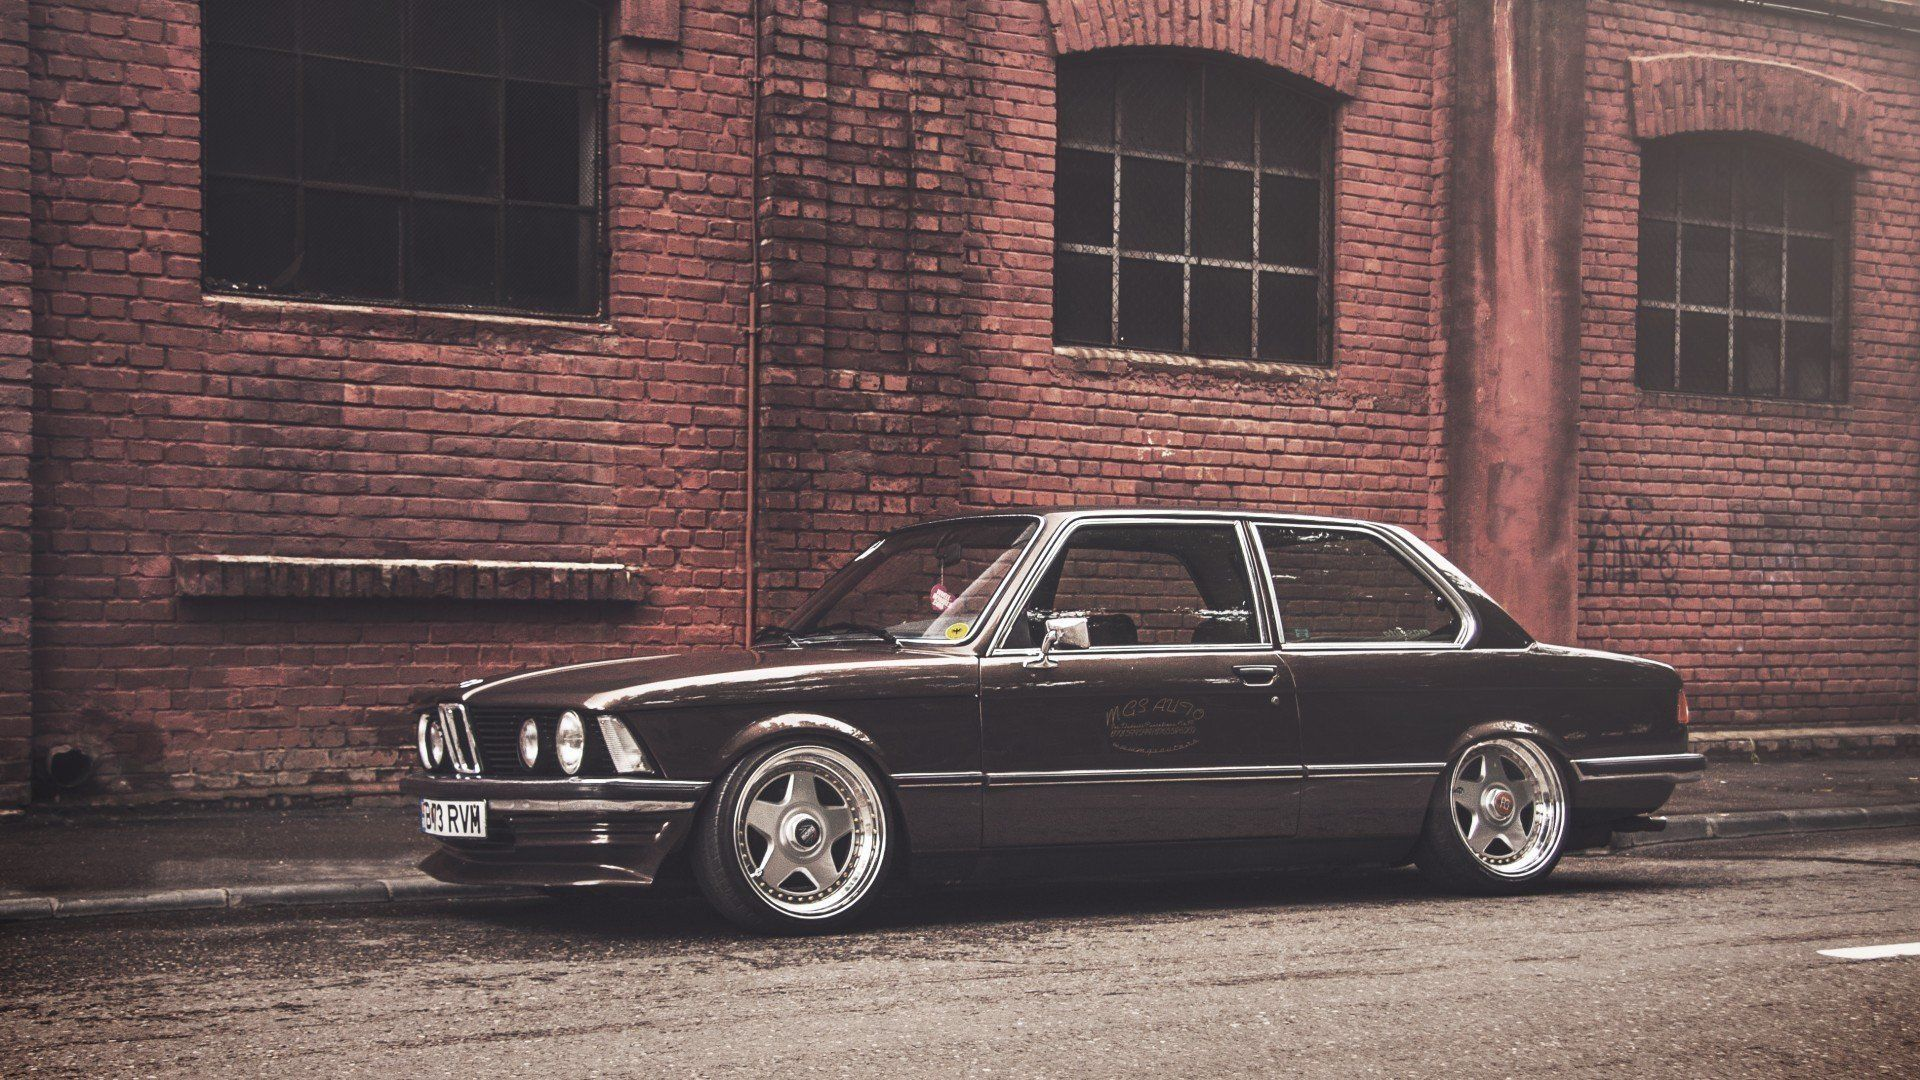 Bmw E21 Albumccars Cars Images Collection